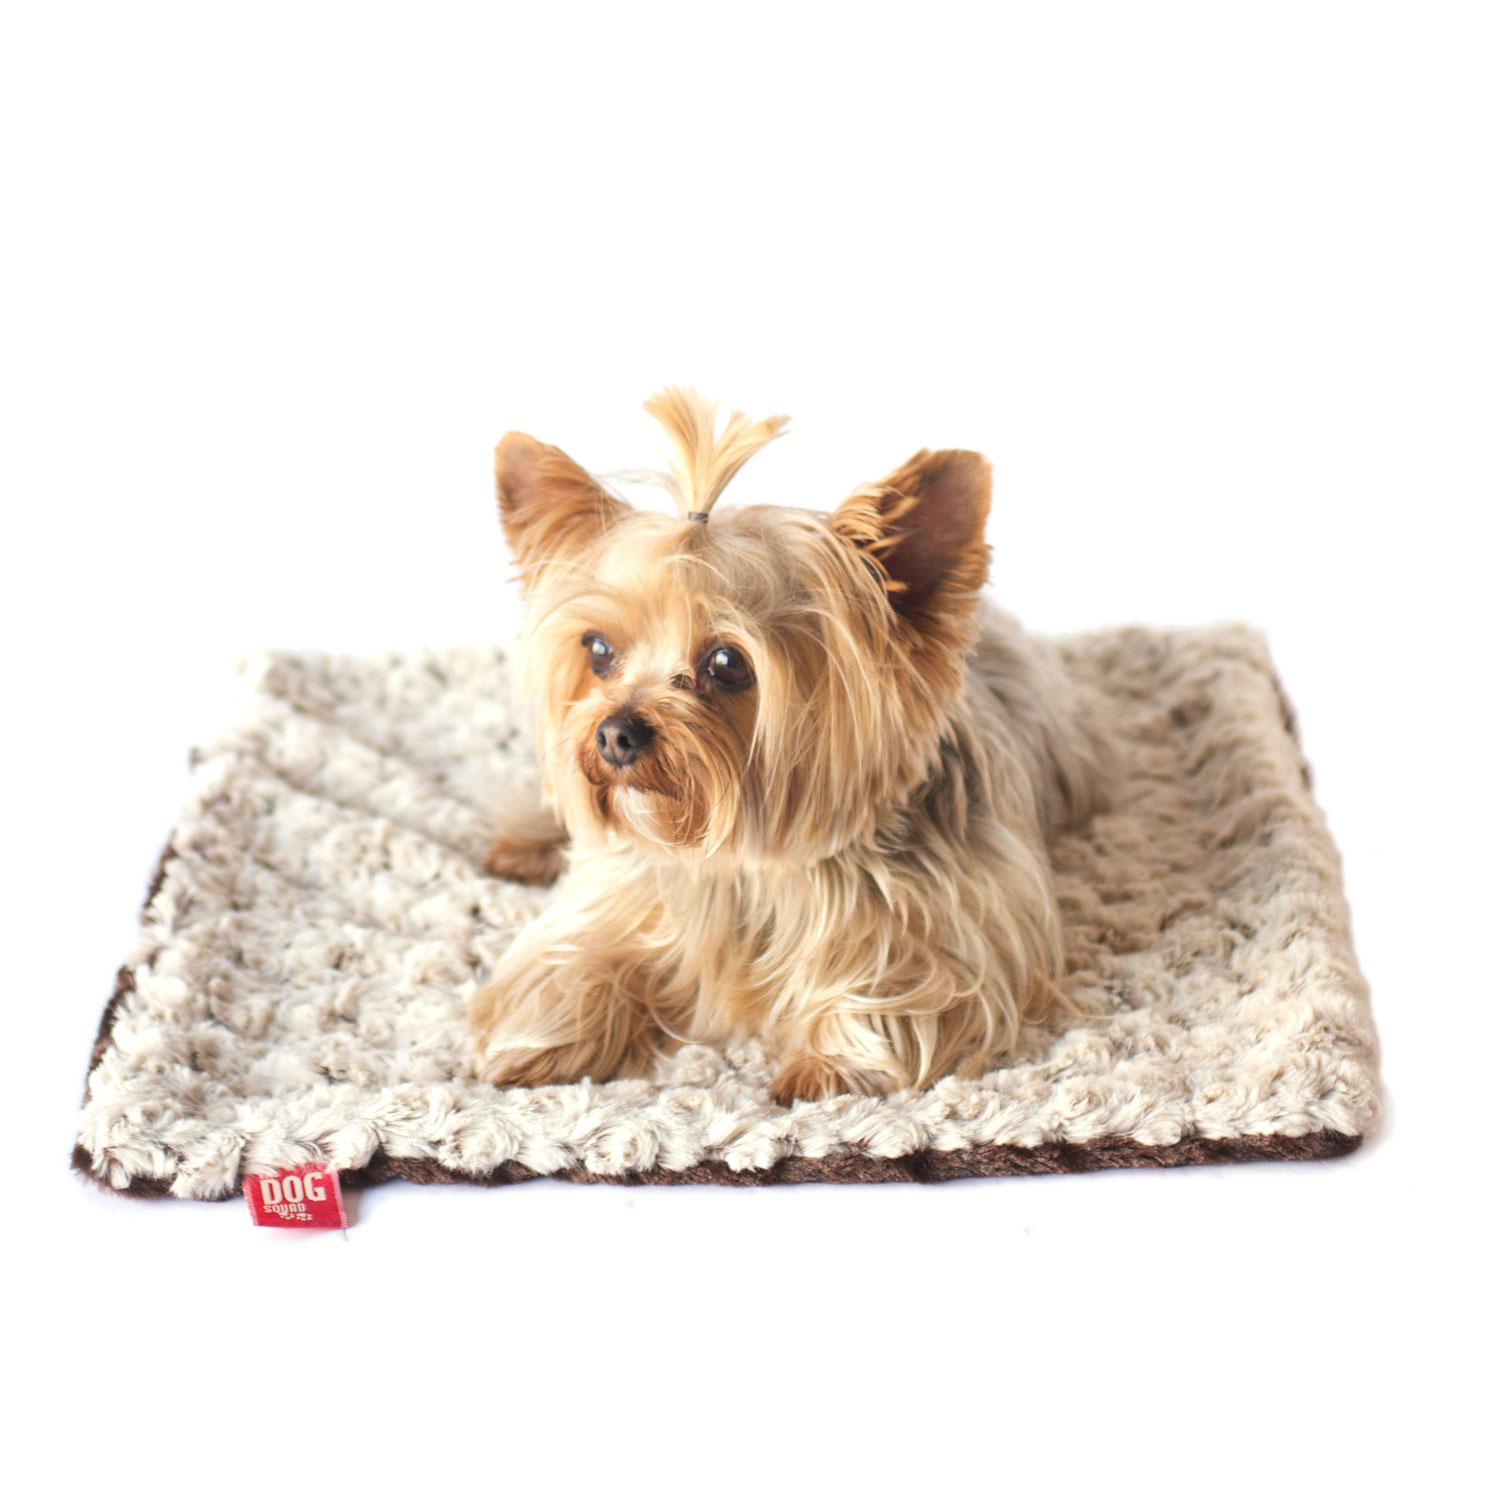 The Dog Squad Minkie Binkie Blanket, Ivory & Brown Two Tone Rosebud, 20-in x 30-in